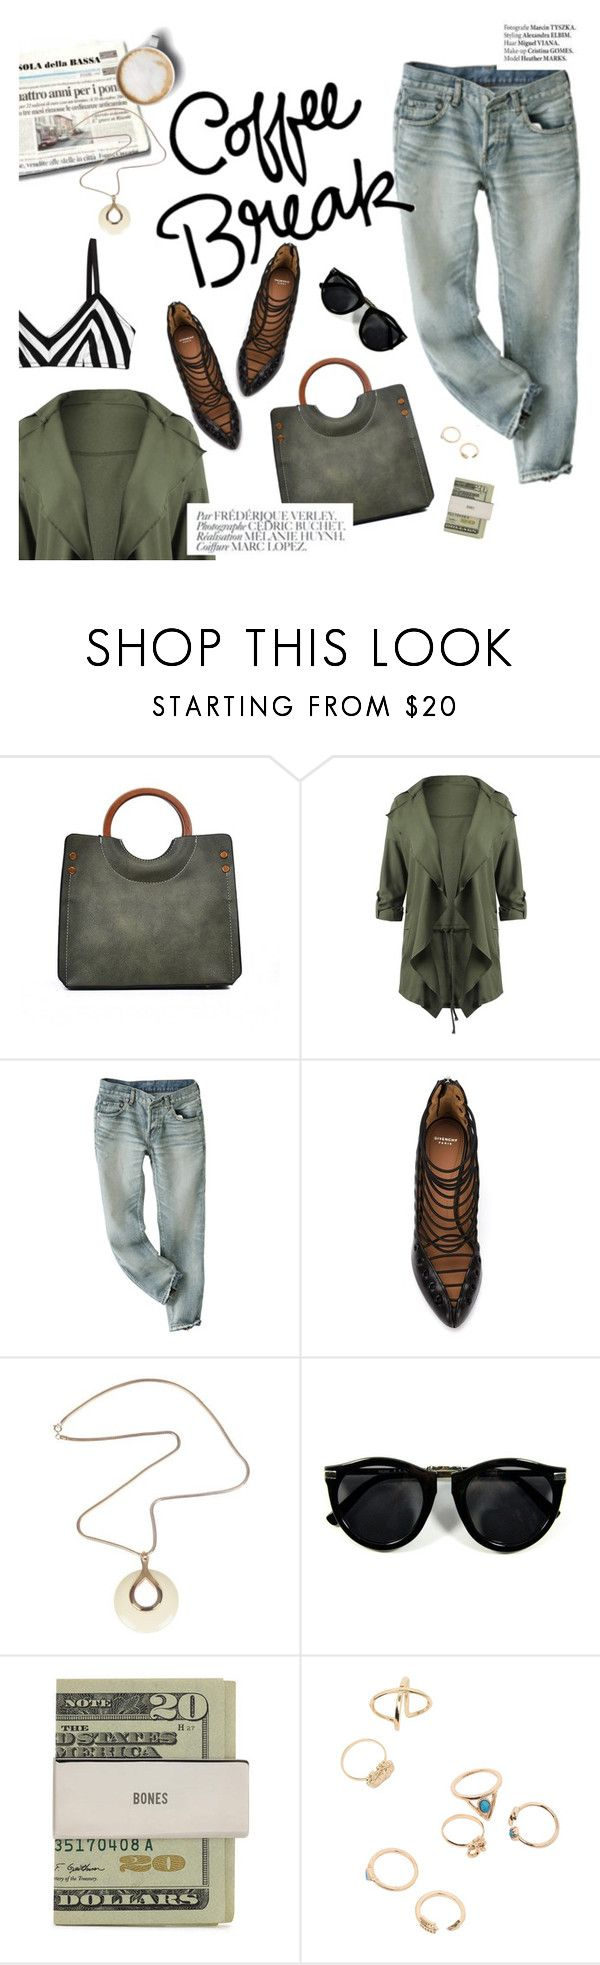 """Coffee break"" by lux-life ❤ liked on Polyvore featuring Givenchy, Bela, Haute Hippie, Caffé, Lanvin, Jack Spade and Monki"